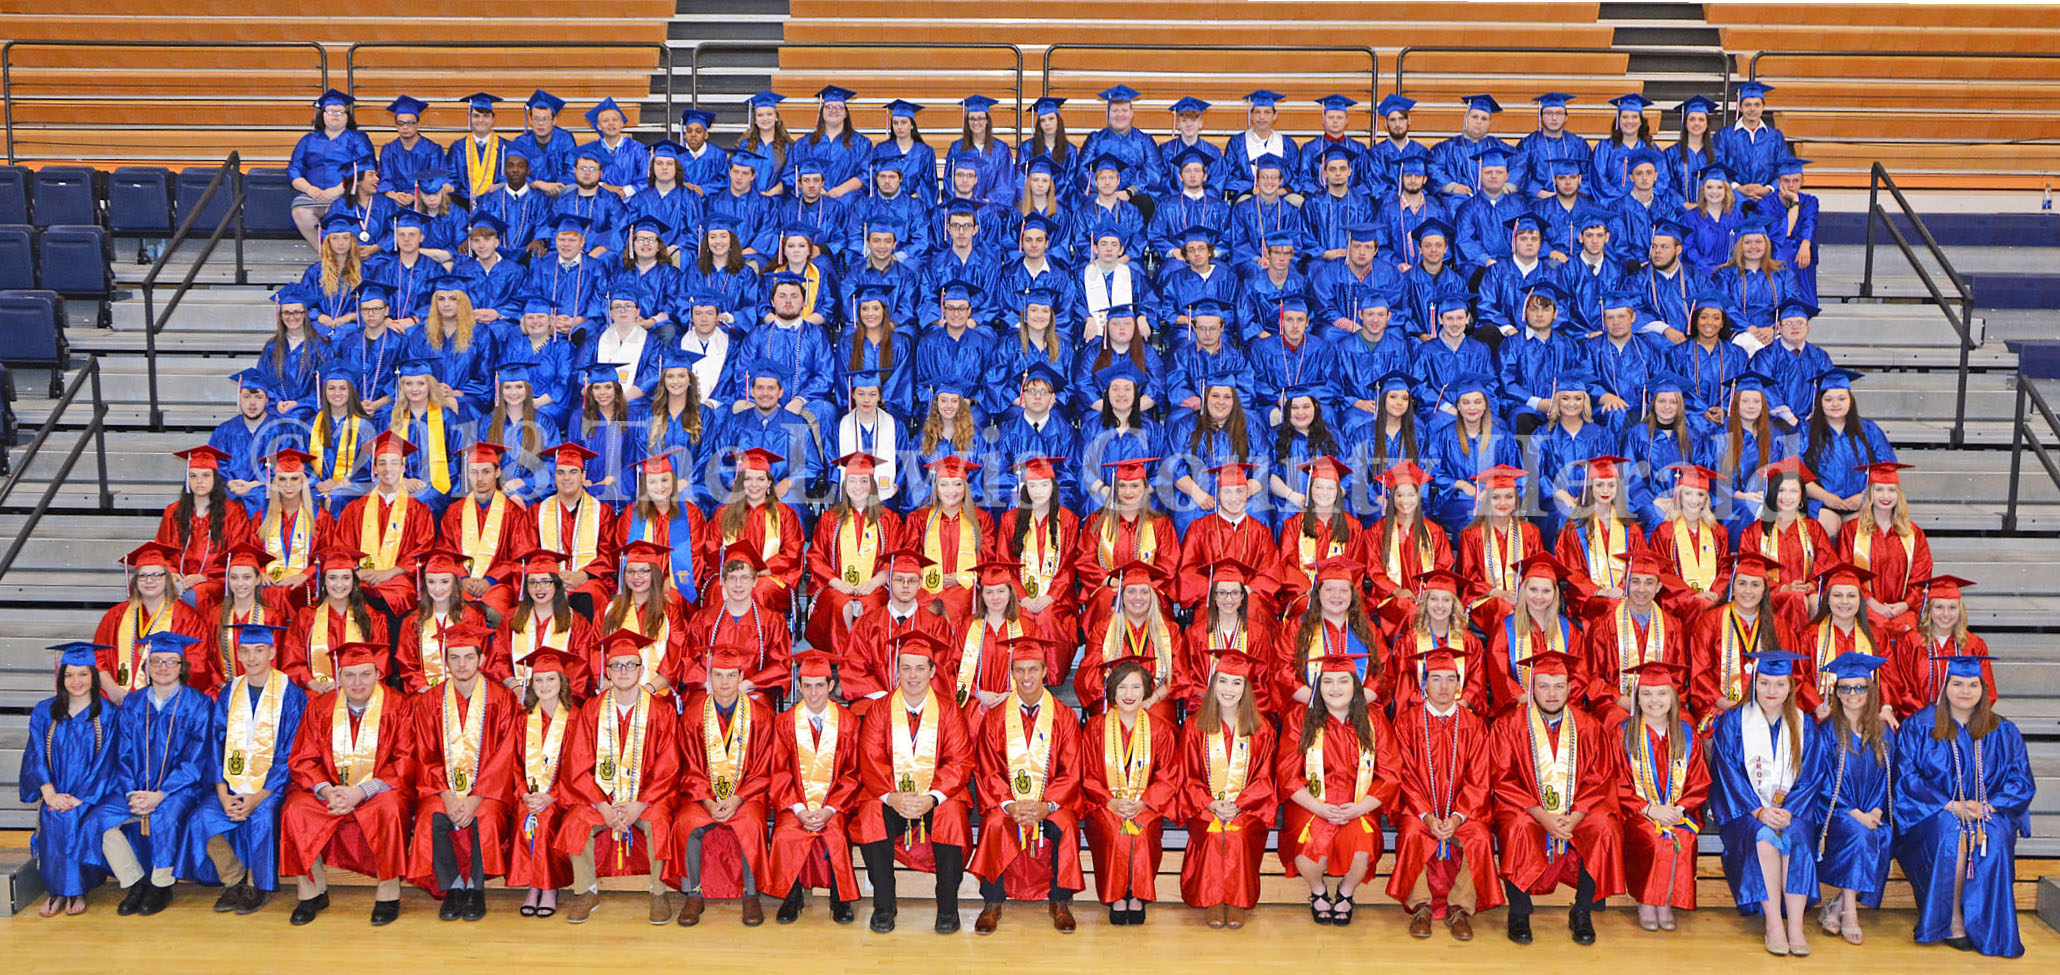 Lewis County High School Class of 2018